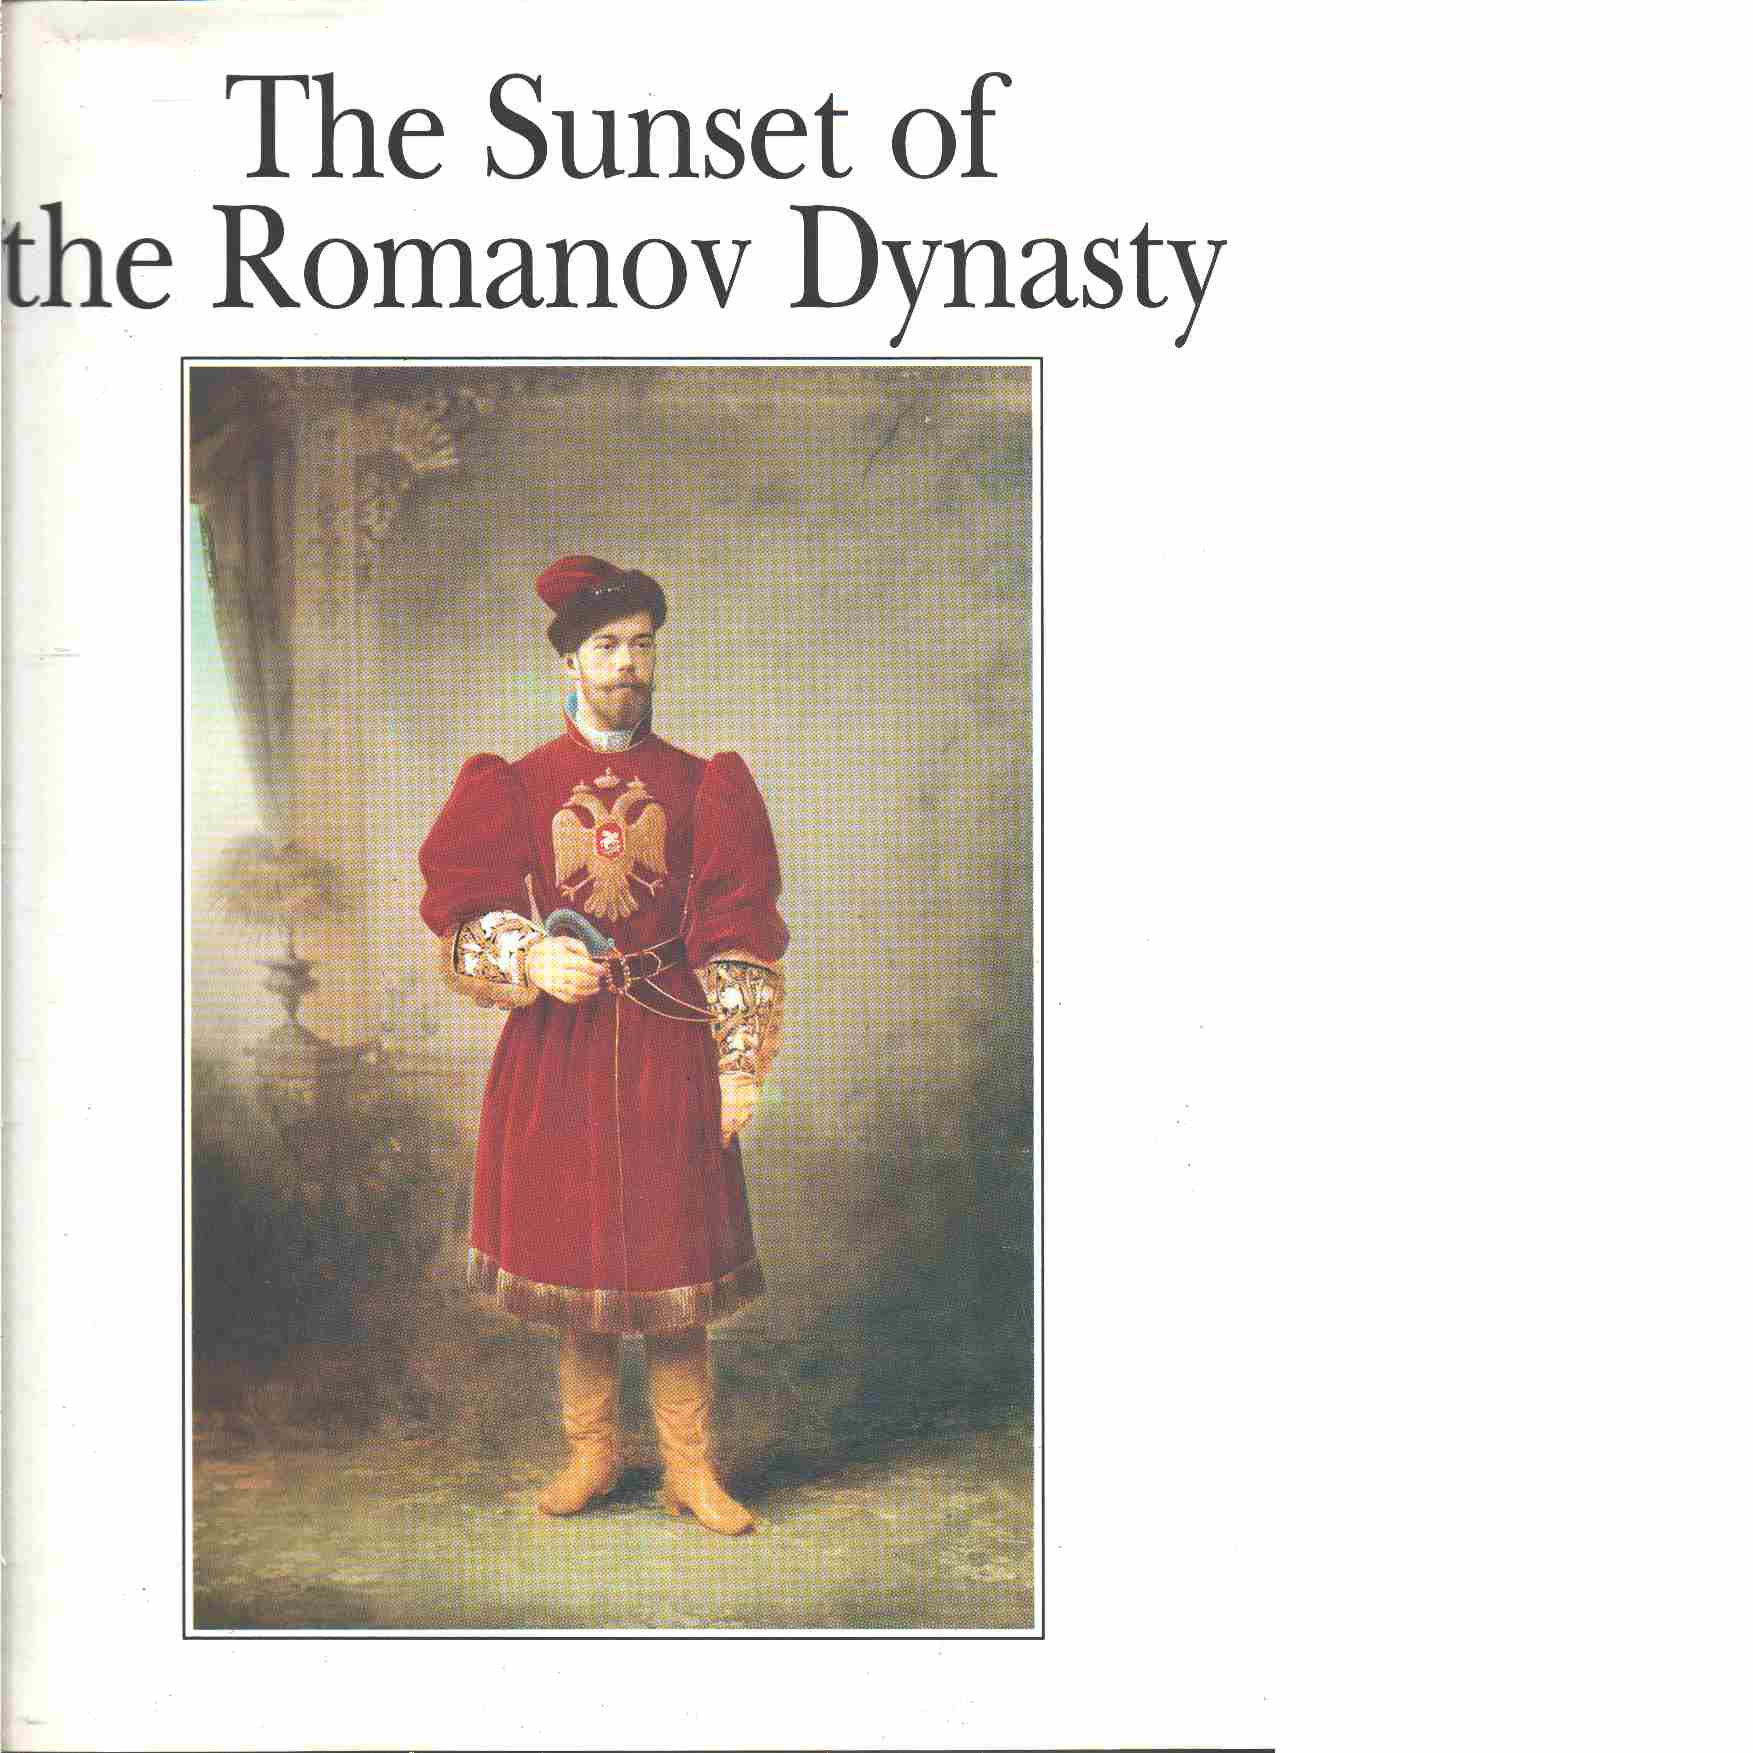 The Sunset of the Romanov Dynasty - Iroshnikov Mikhail, Protsai Liudmila and Shelayev Yuri